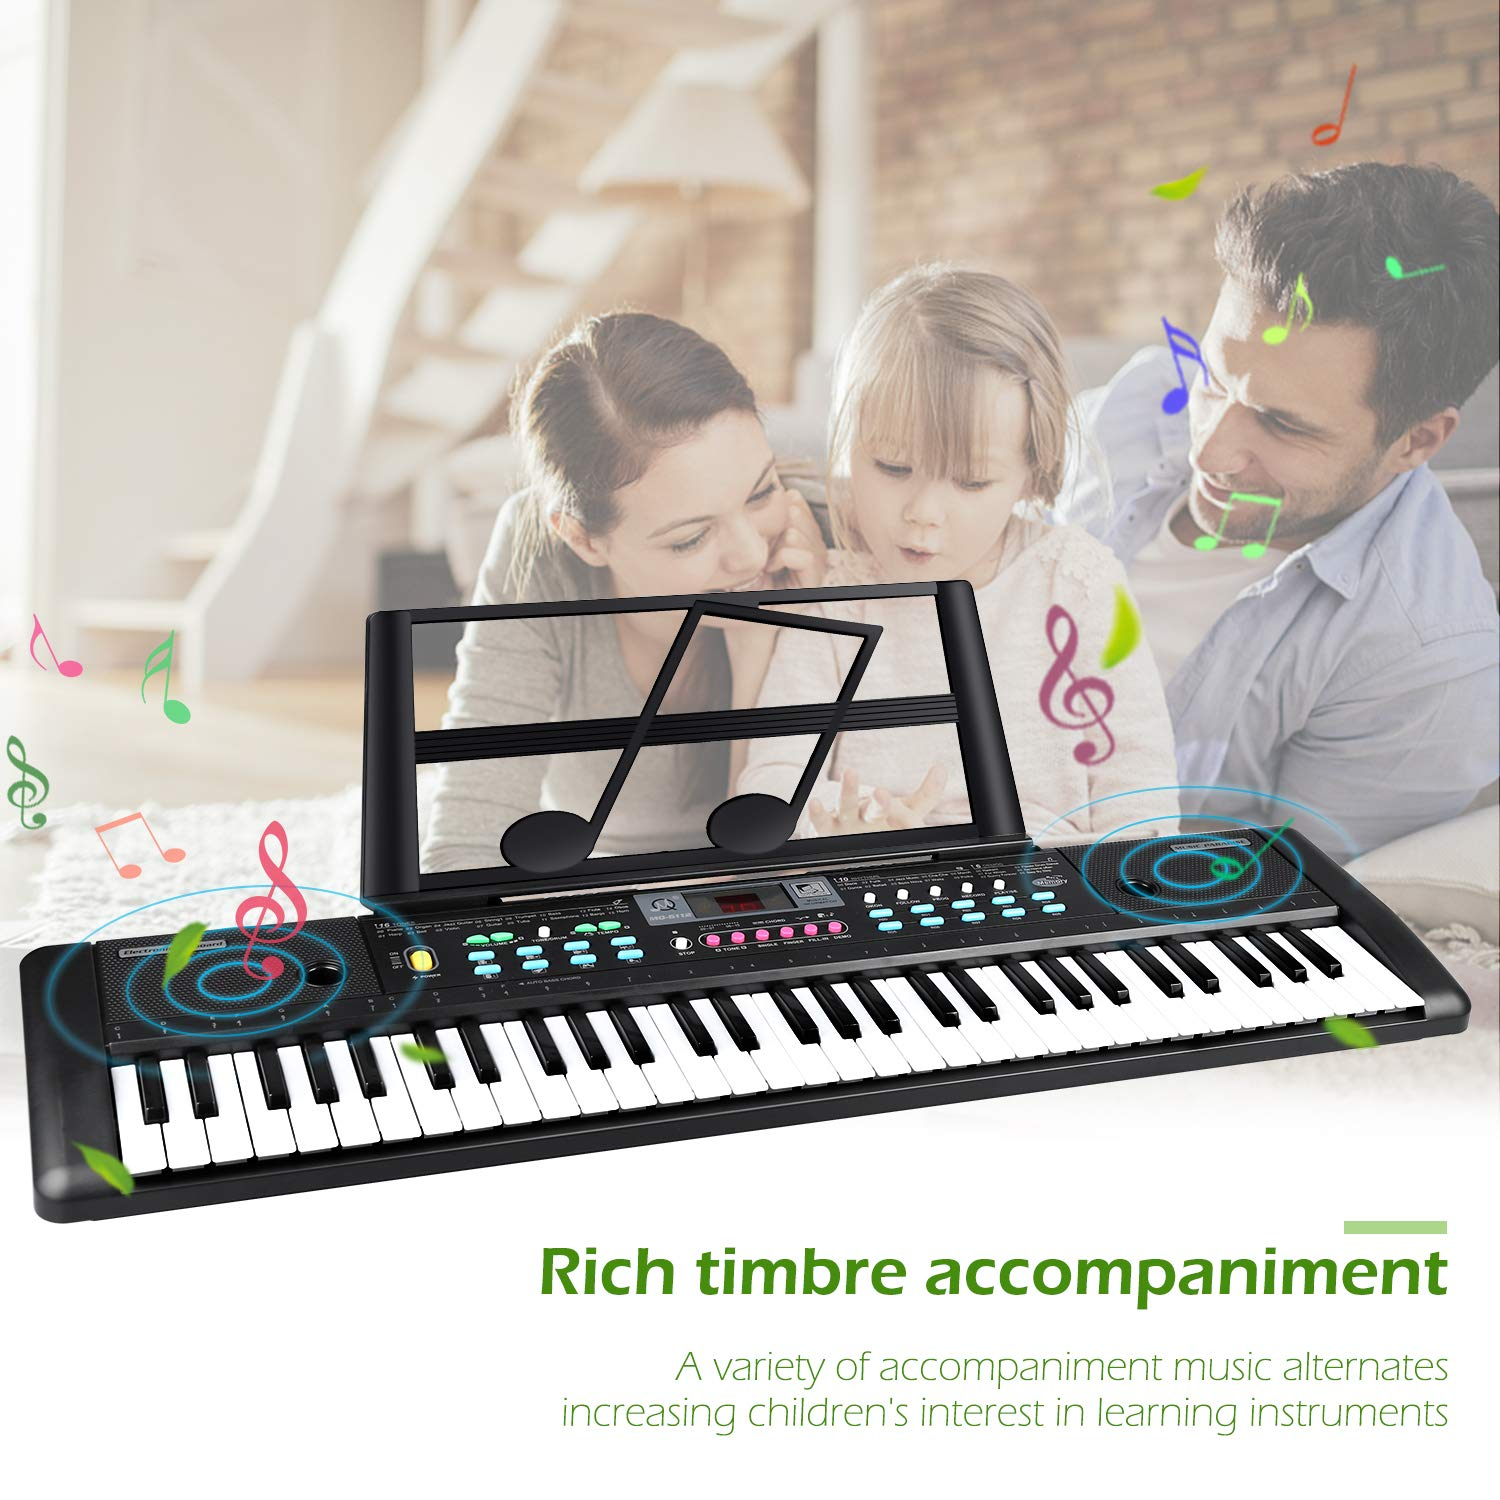 ZJTL 61-Key Digital Electric Piano Keyboard & Music Stand & microphone- Portable Electronic Keyboard (Kids & Adults) MQ-6112 by ZJTL (Image #3)